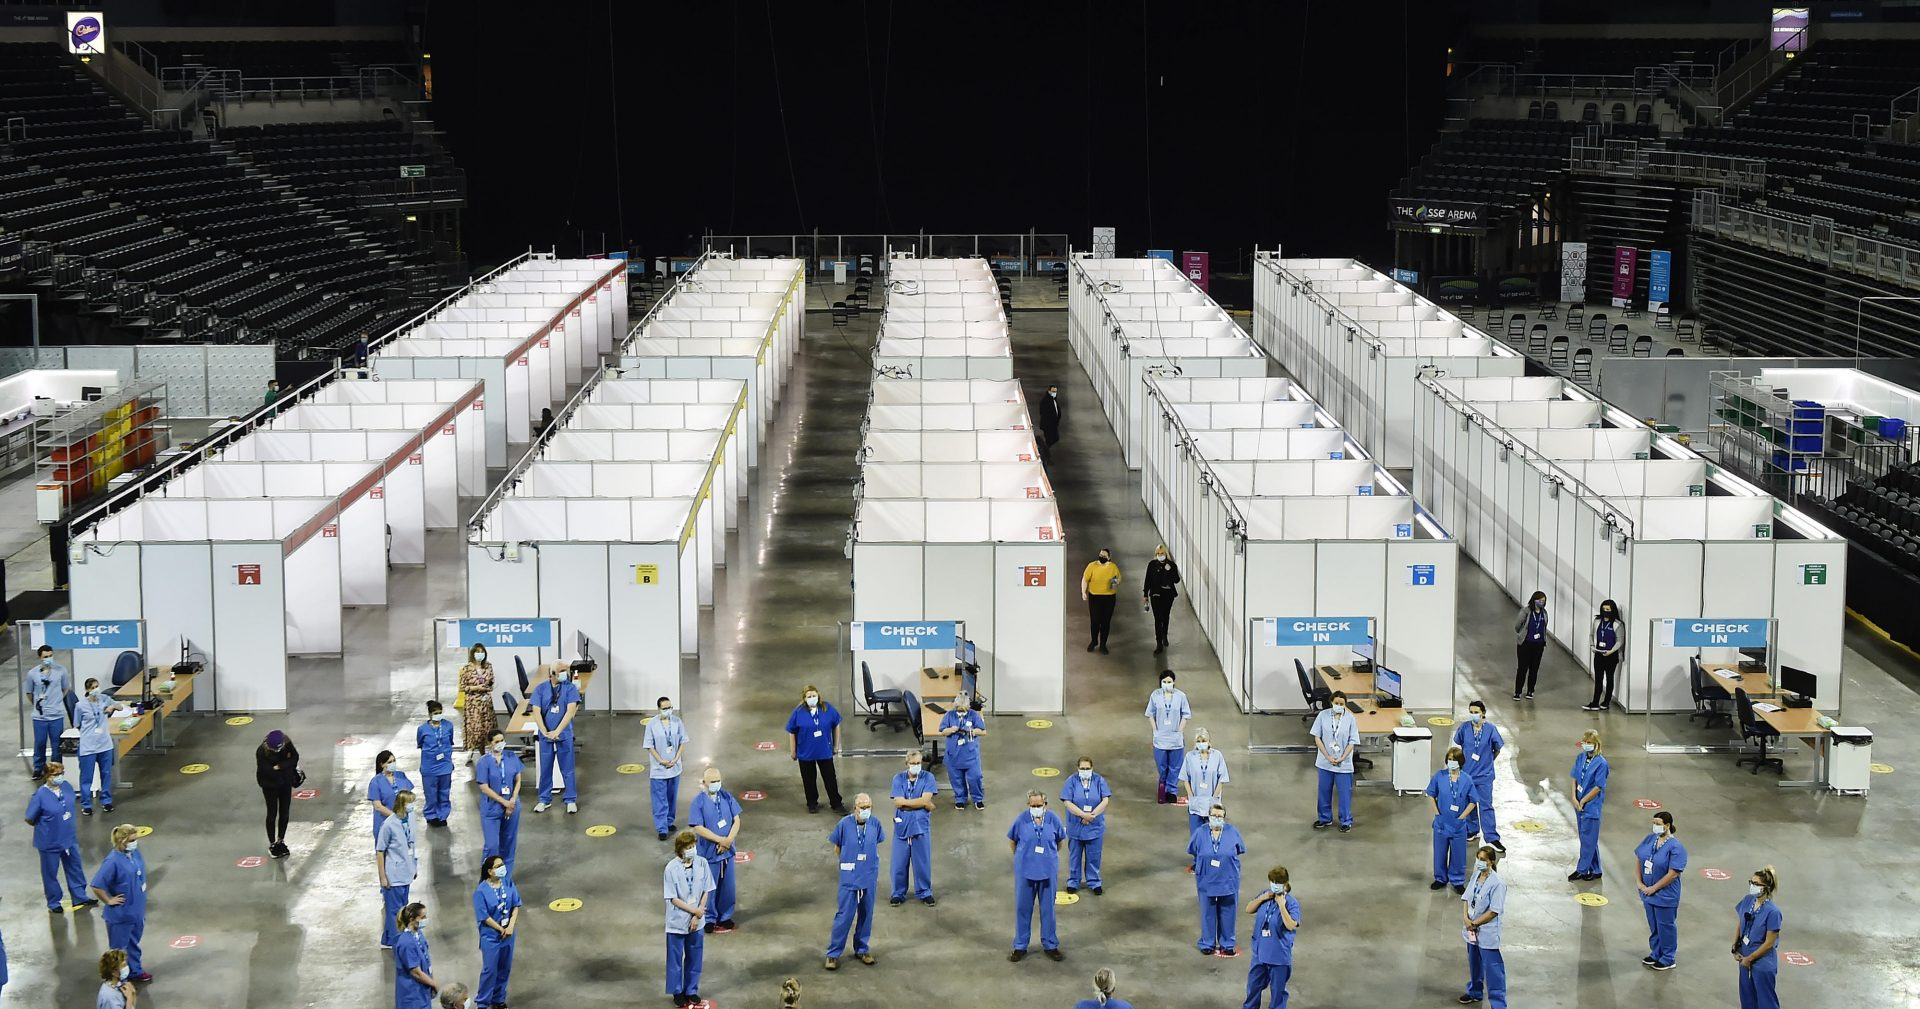 A dystopian-looking vaccine centre at Belfast's Odyssey Arena. Photo: Charles McQuillan.